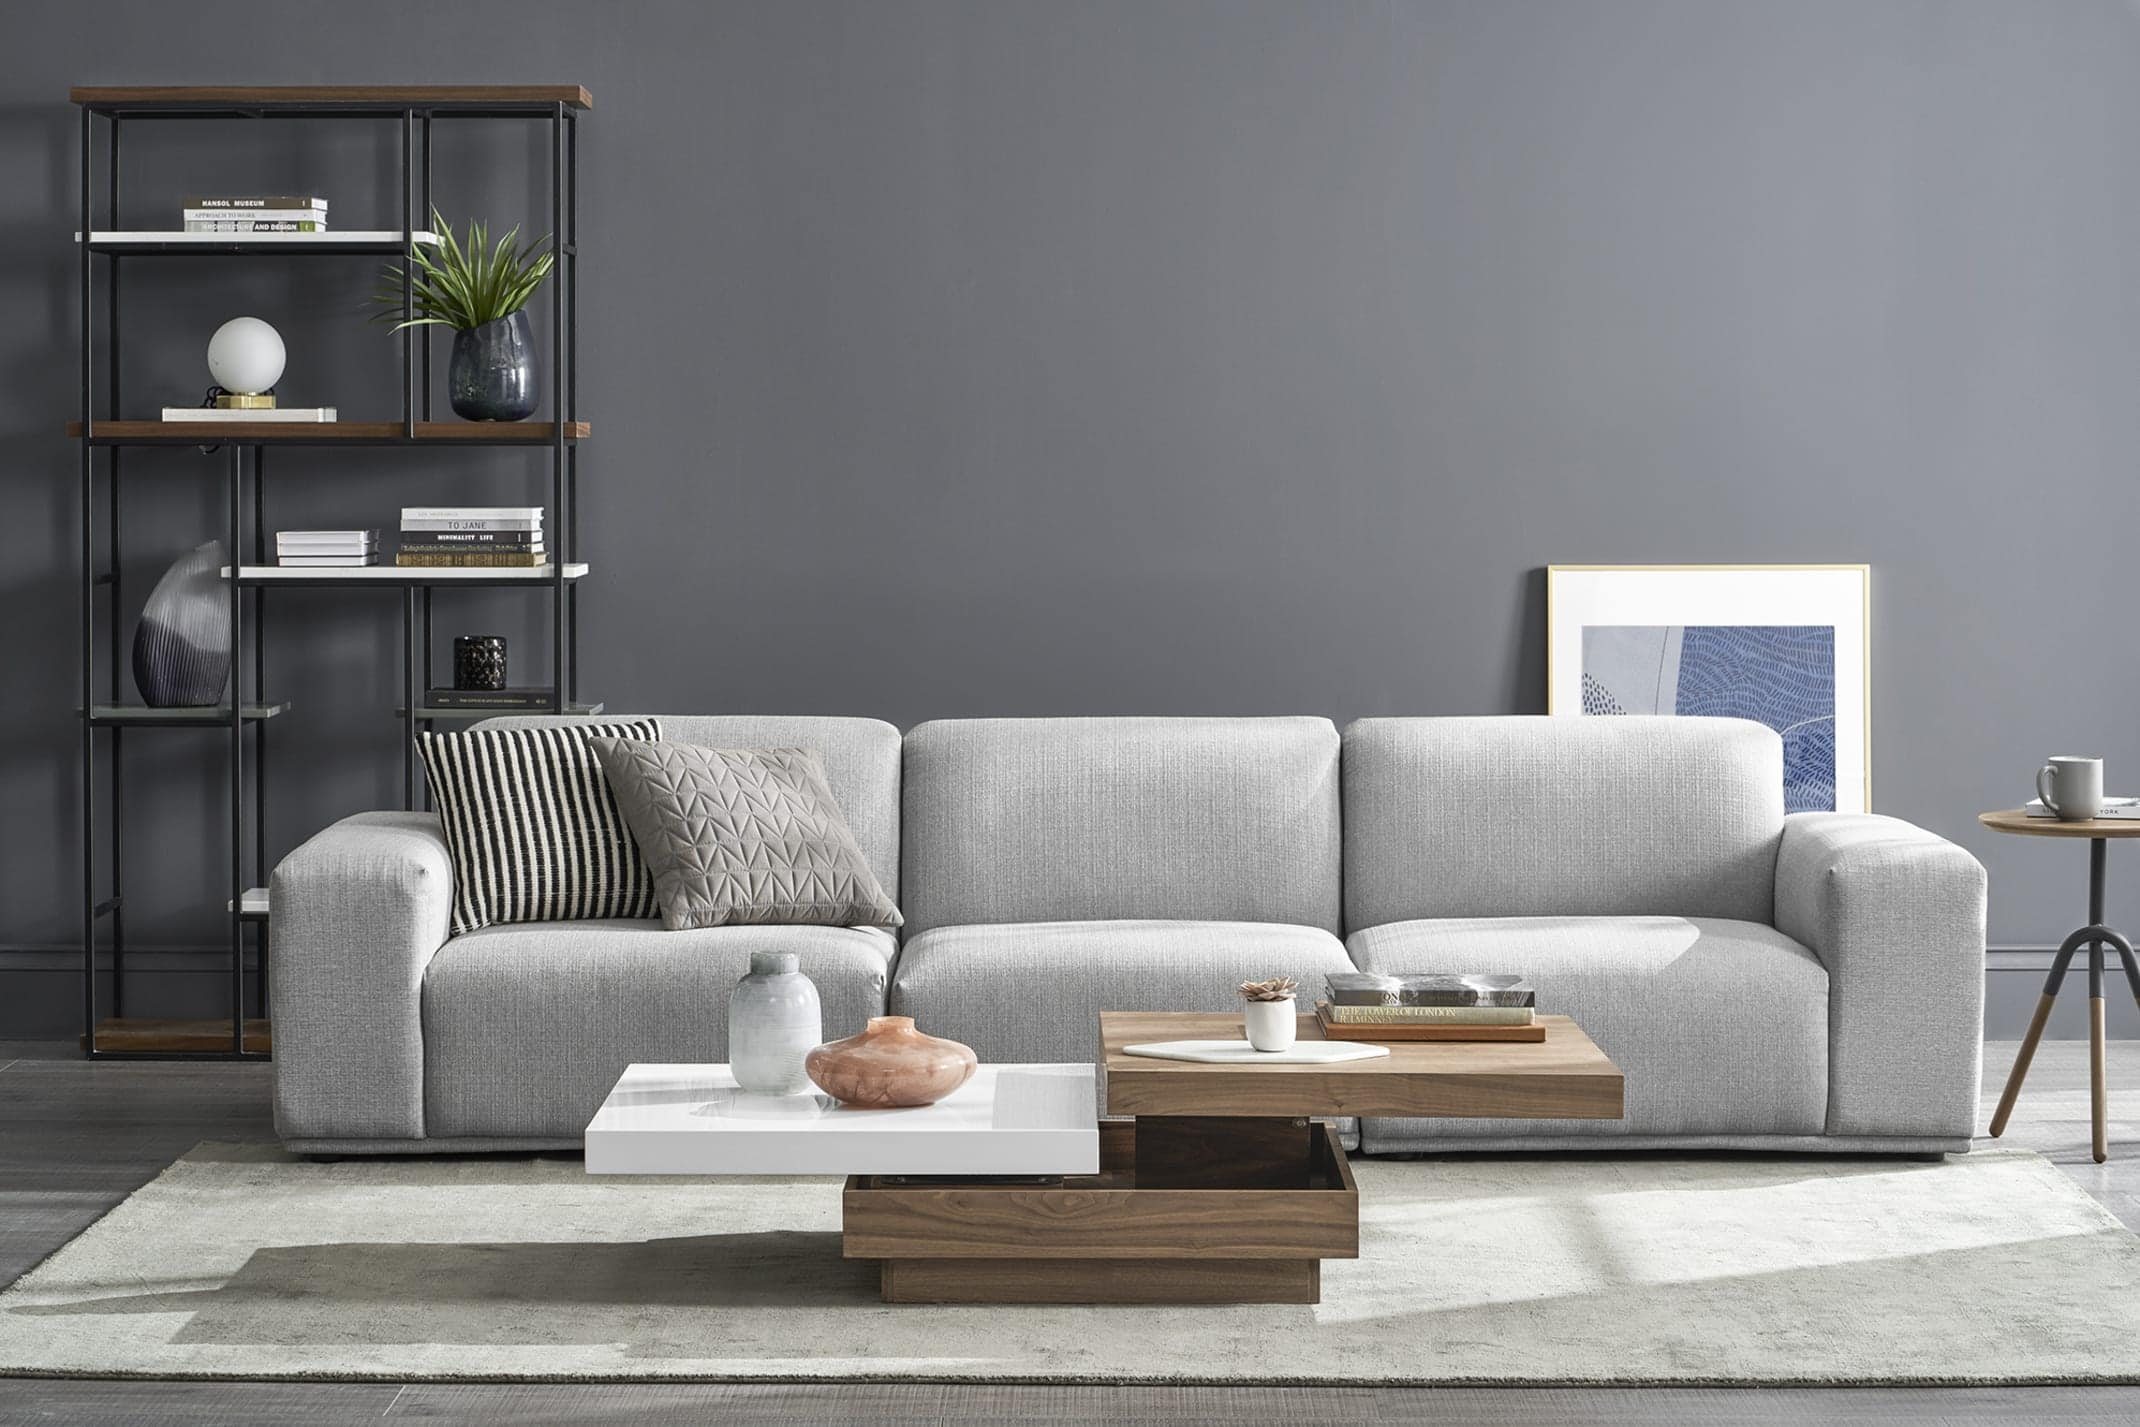 andre coffee table from castlery